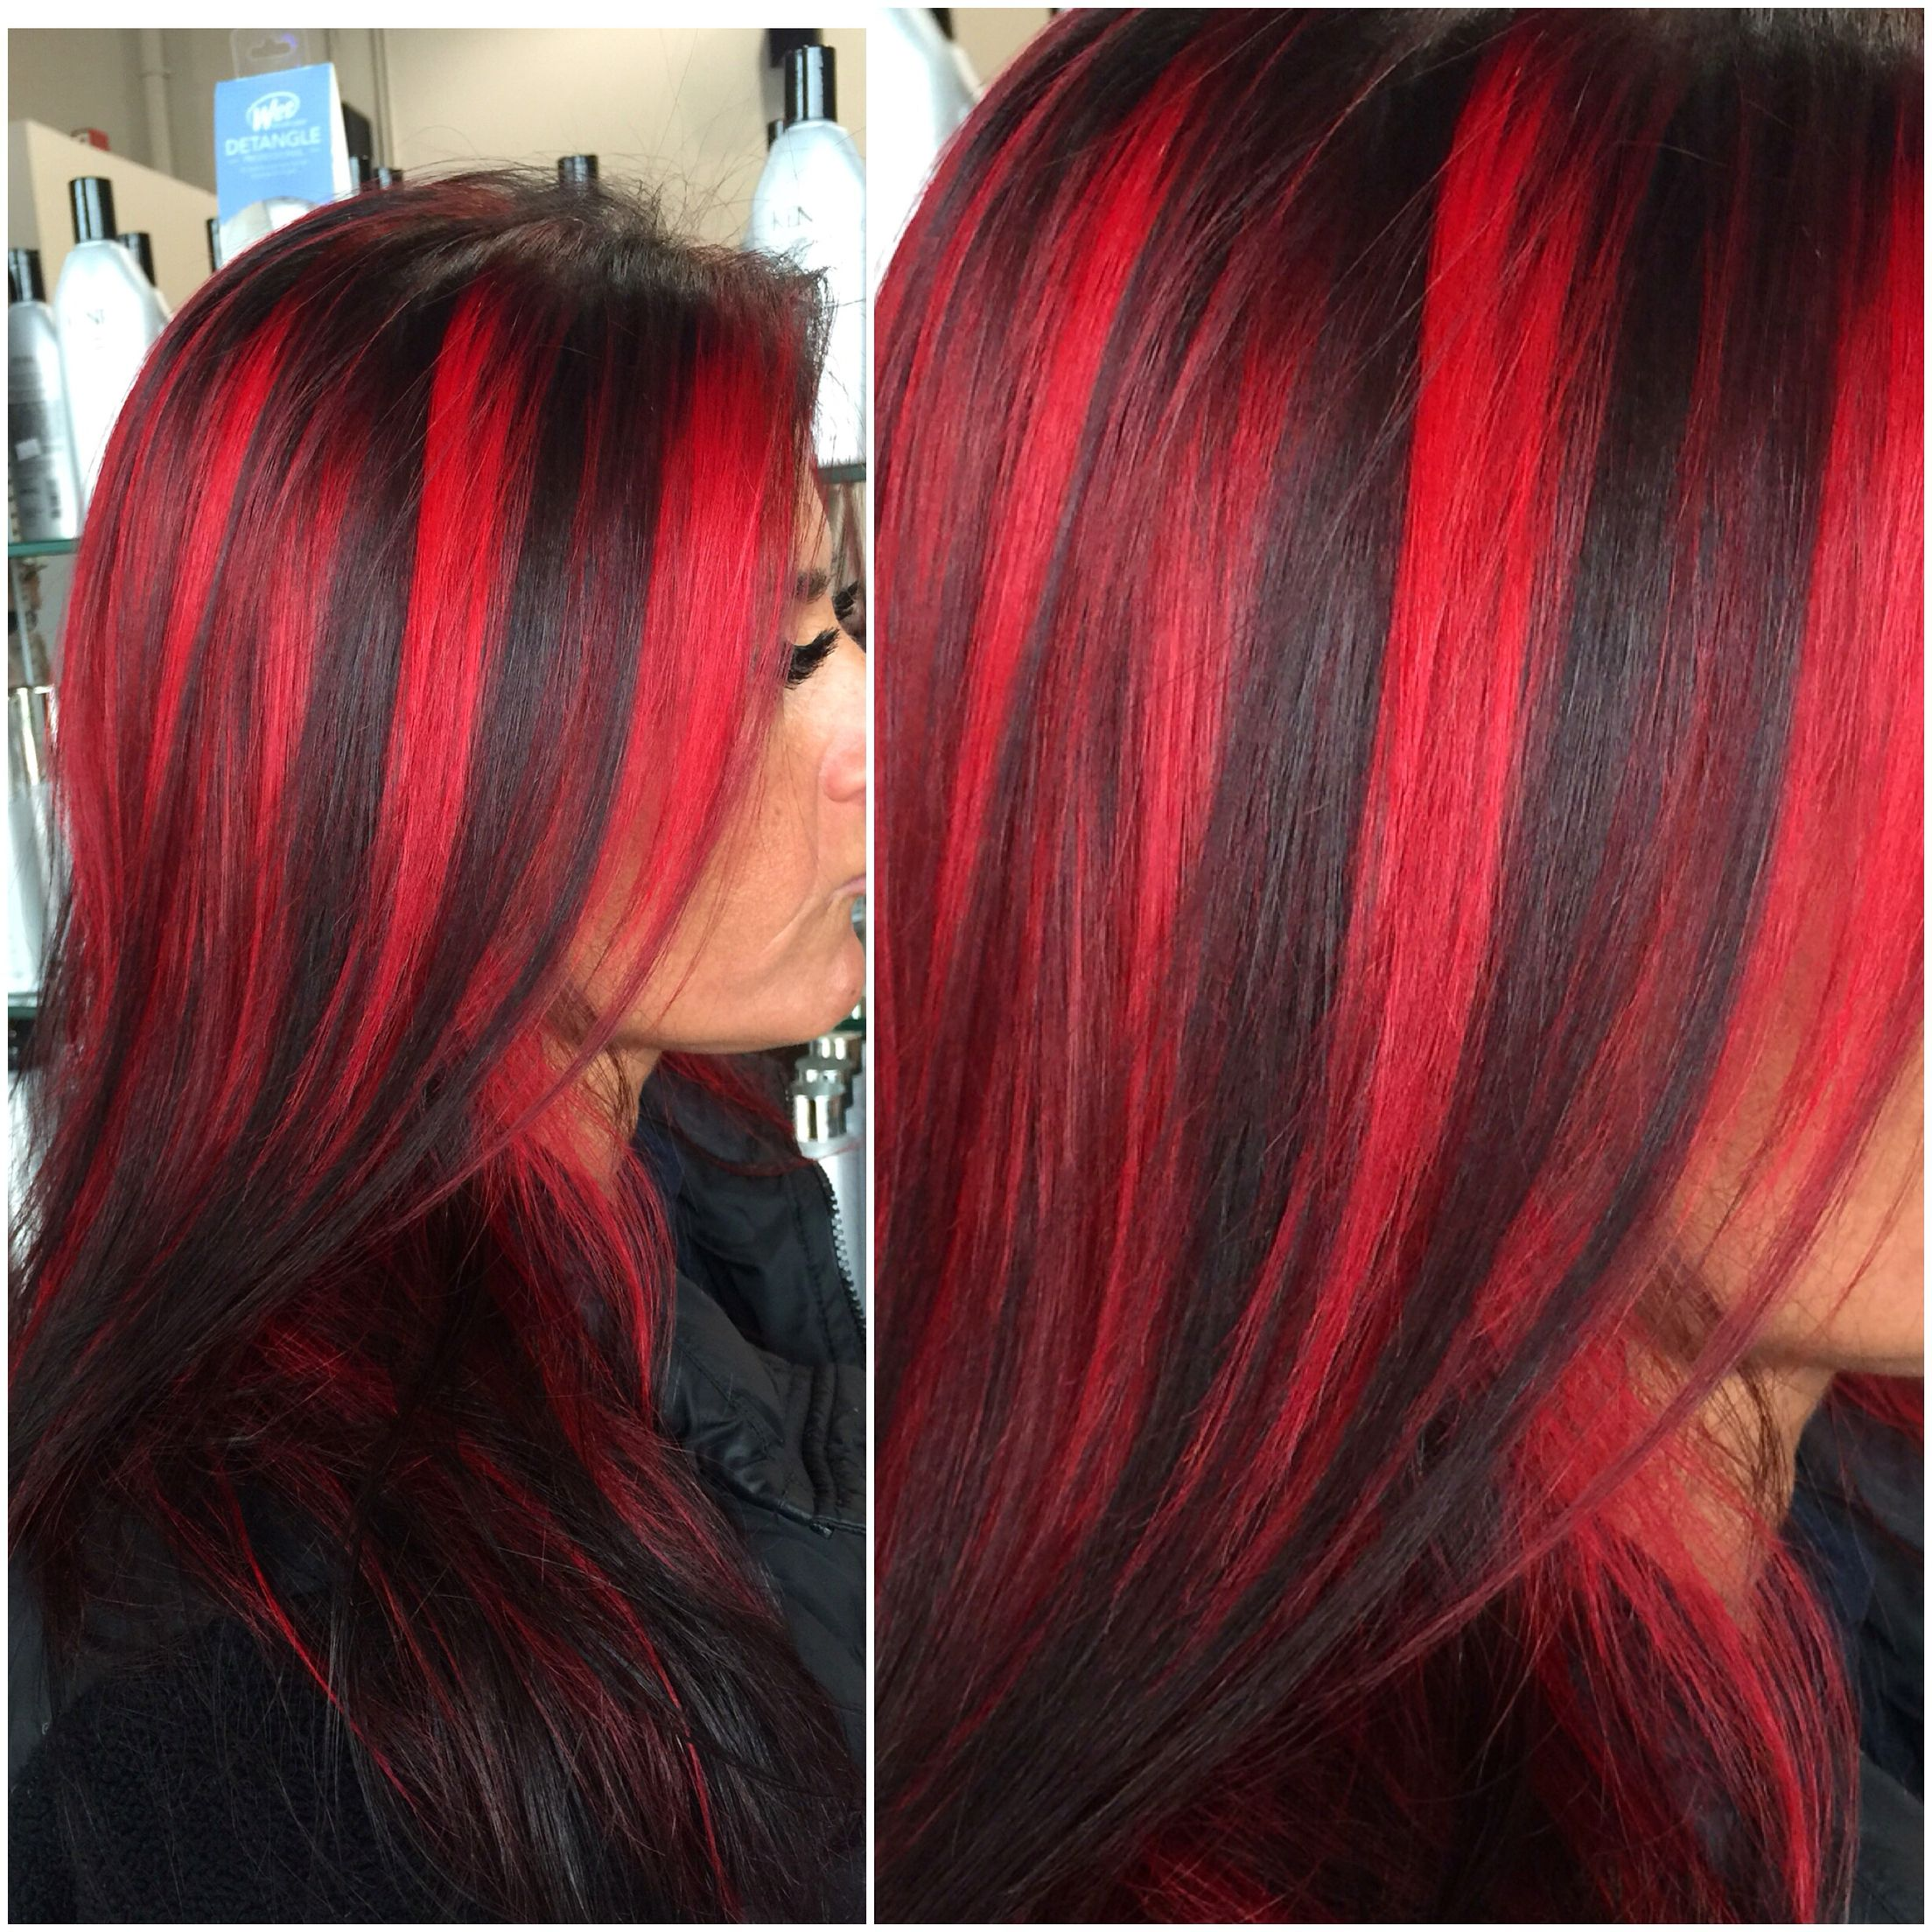 Black and red ombr hair pinterest hair coloring black and chunky red highlights by hairbyangelaalberici long islandny red black hairshort pmusecretfo Images